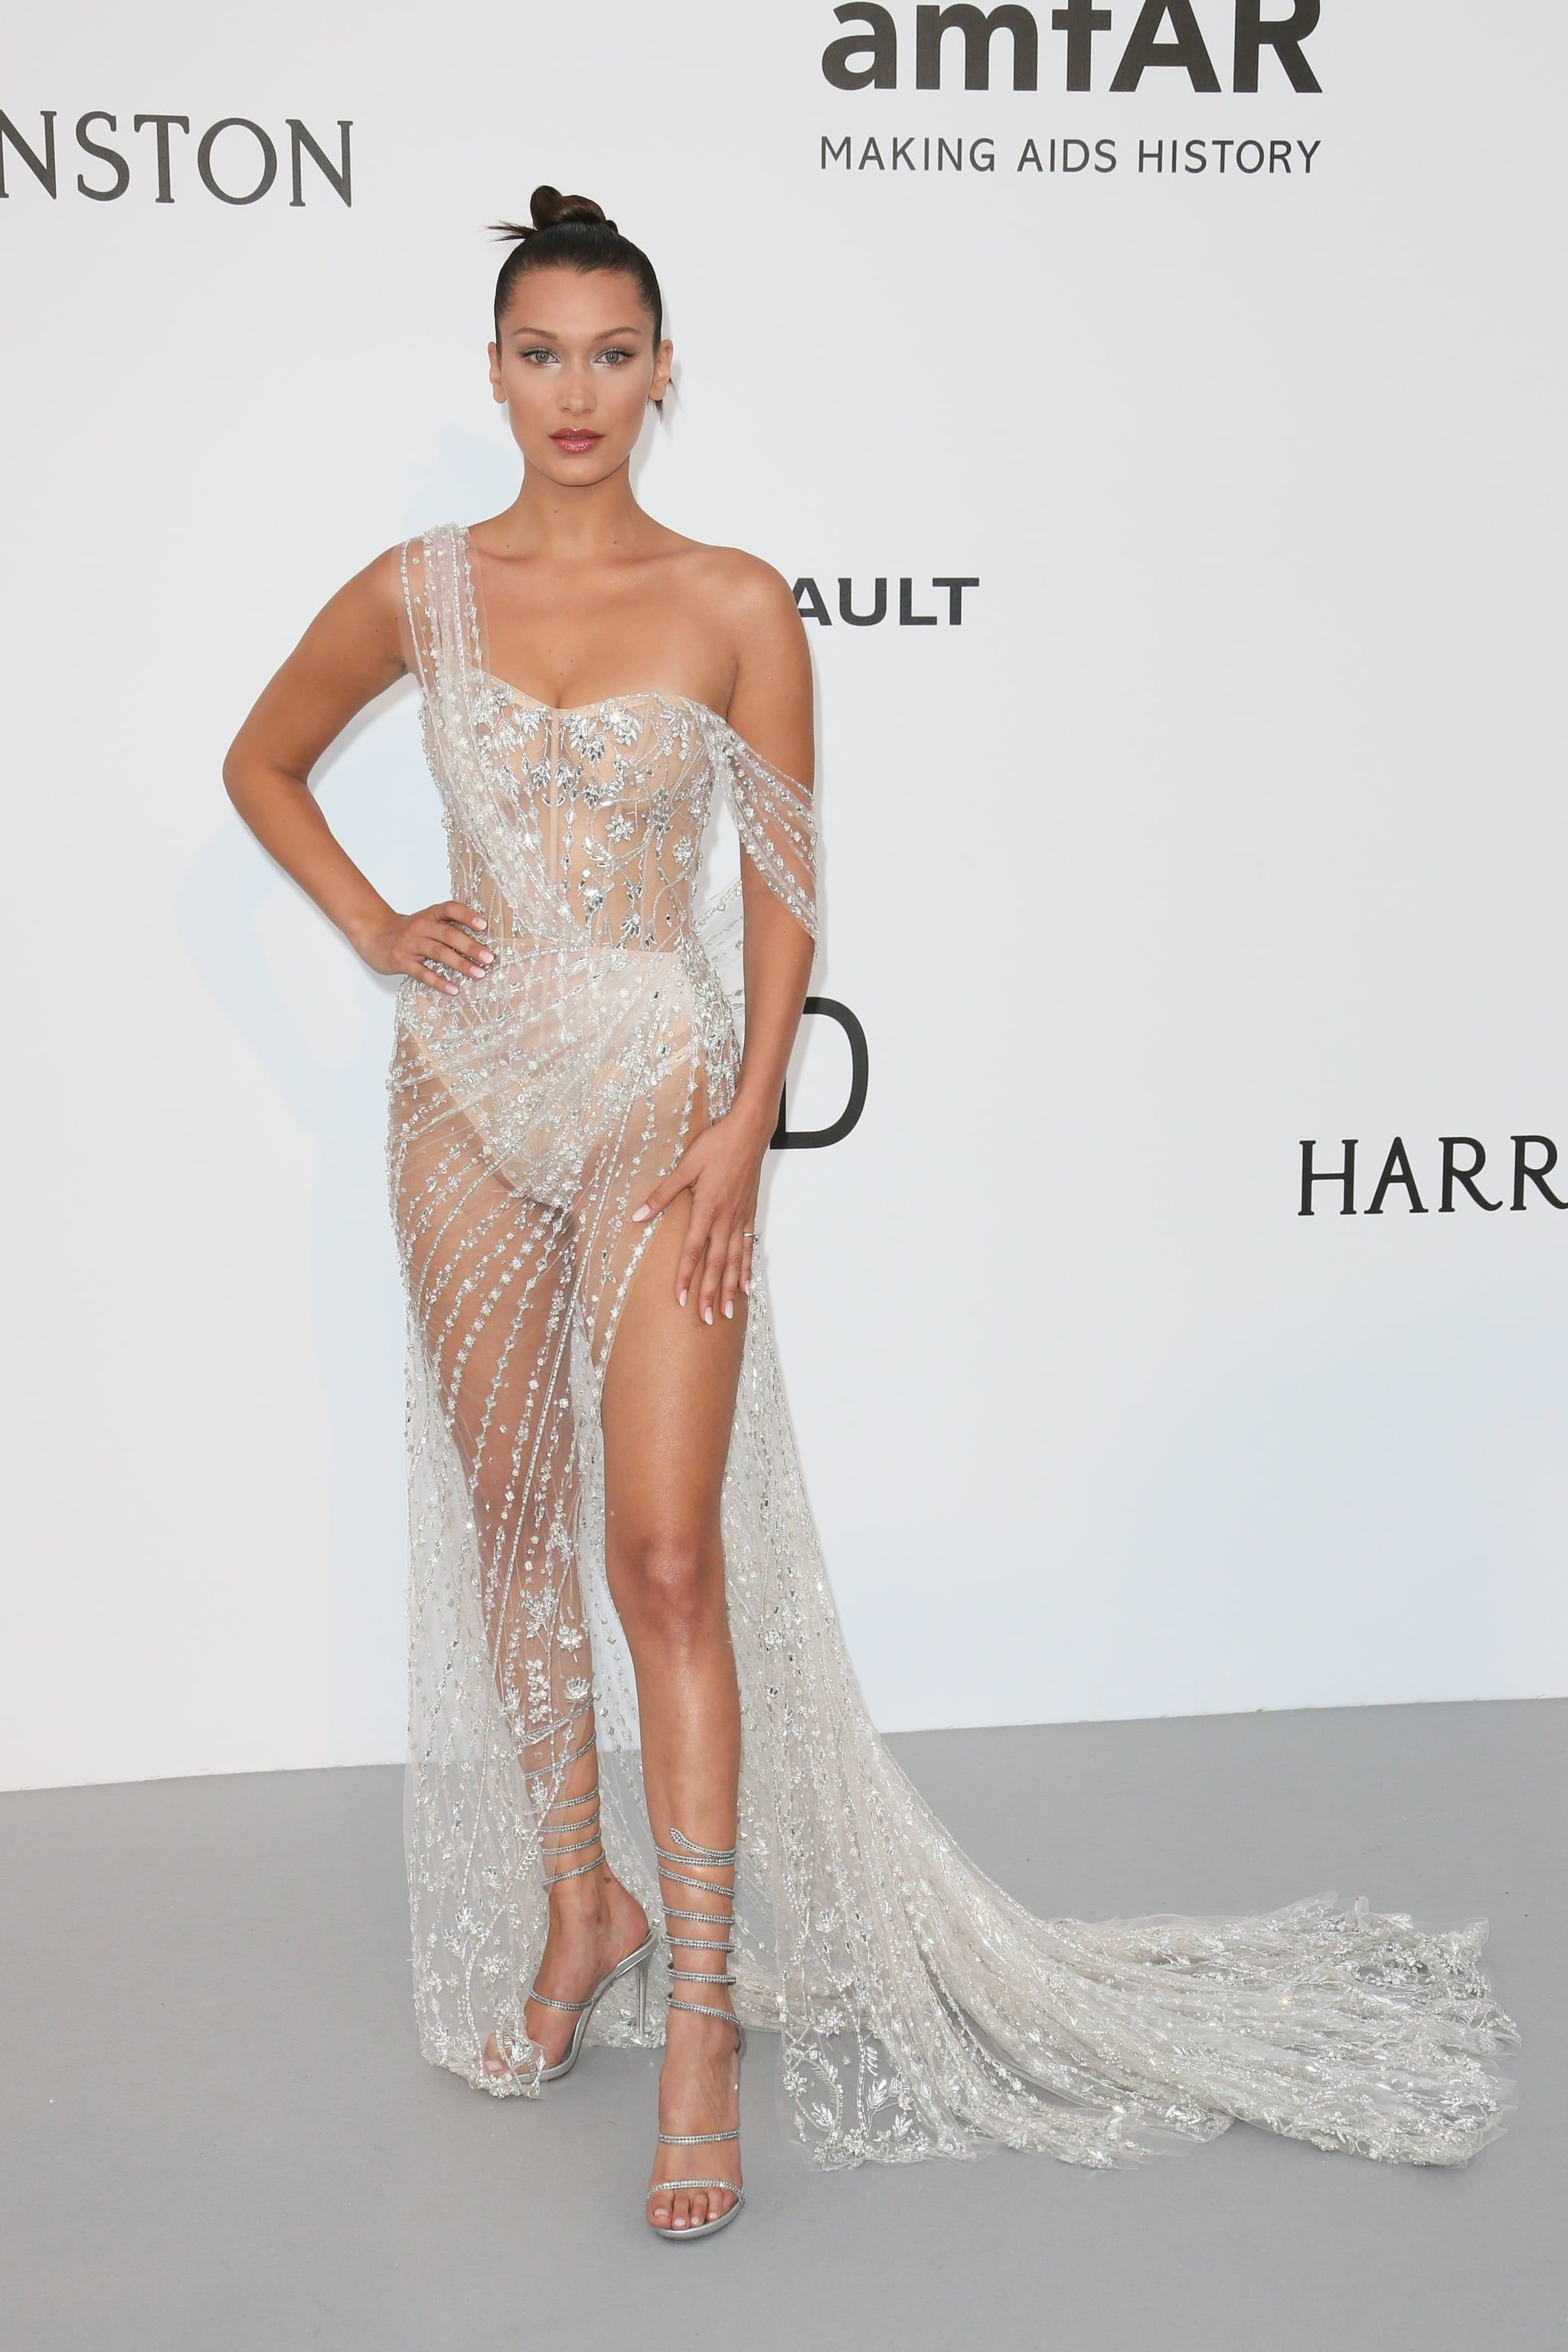 75 Pictures That Prove Bella Hadid Is Gorgeous in a Truly Unreal Way